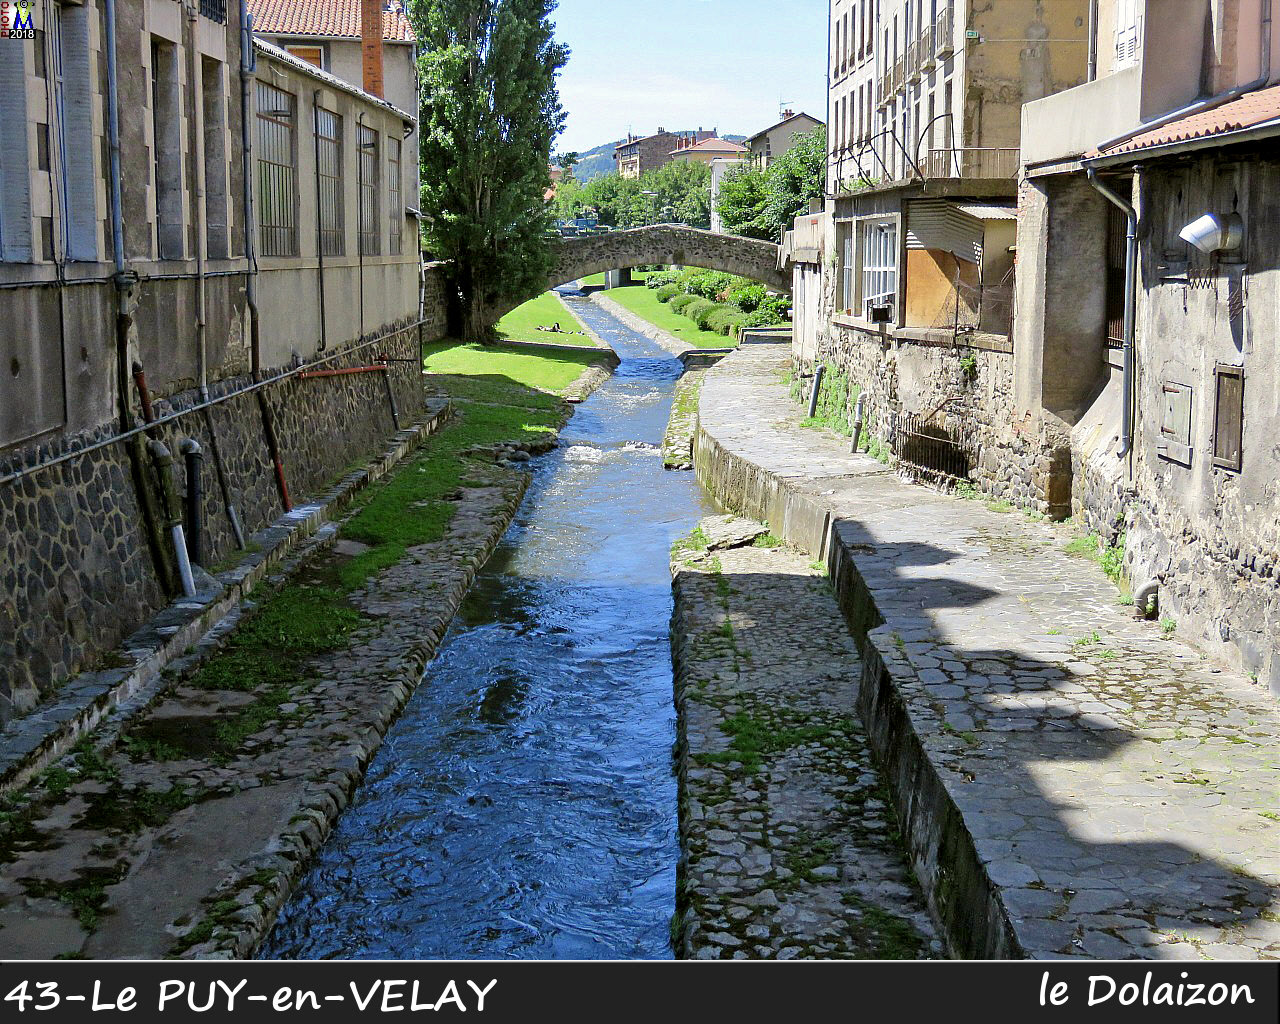 43PUY-EN-VELAY_Dolaizon_100.jpg